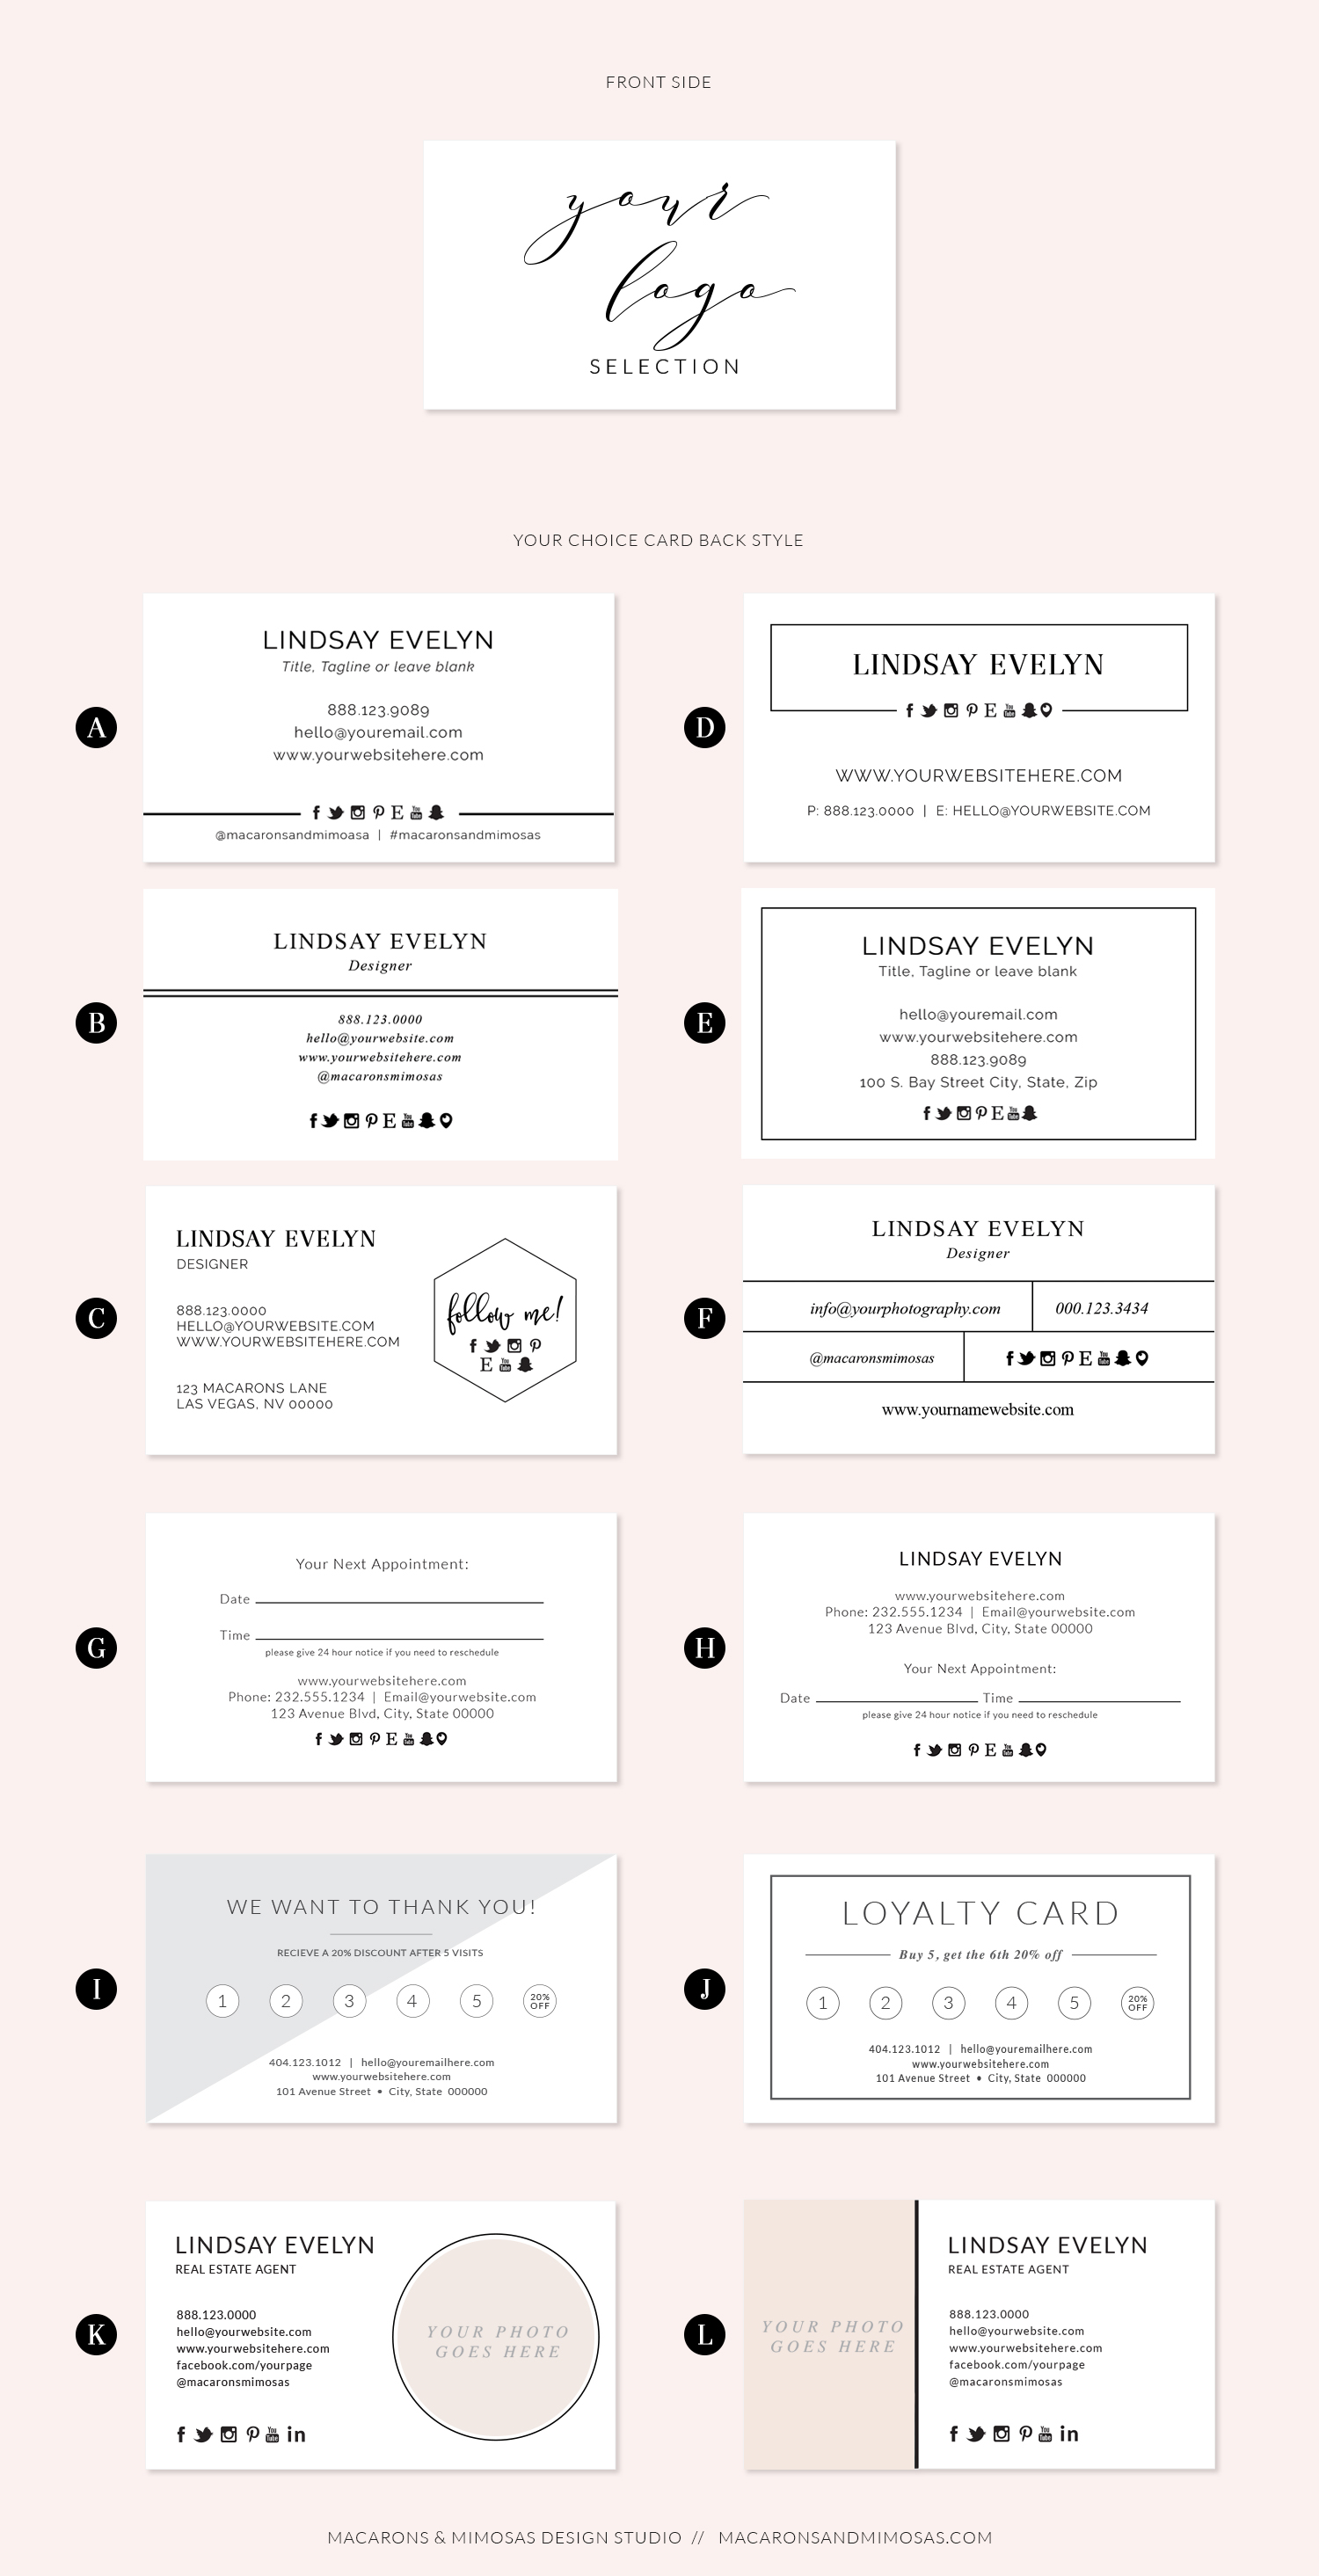 Danielle marie package macarons and mimosas business card design custom business card design premade business card zazzle business cards reheart Choice Image